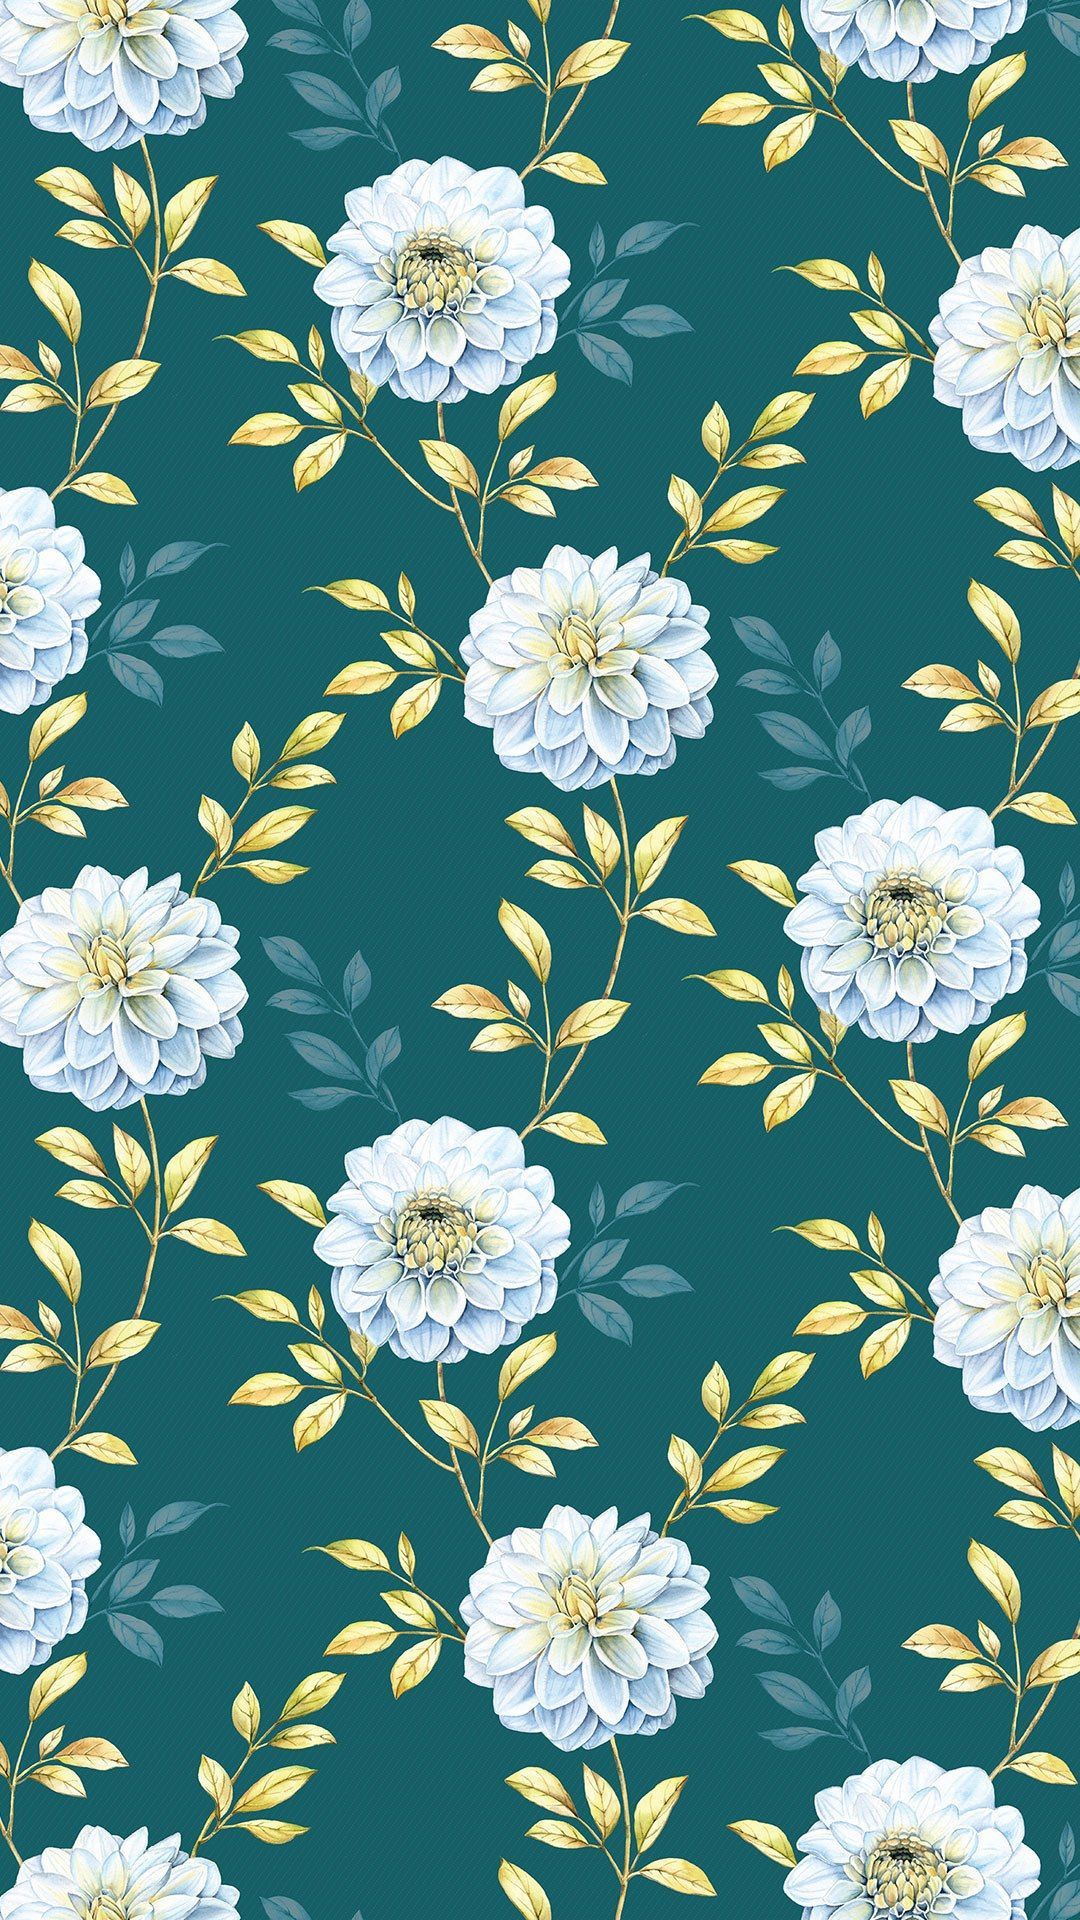 Floral Navy Blue And White Iphone Background · Artistic